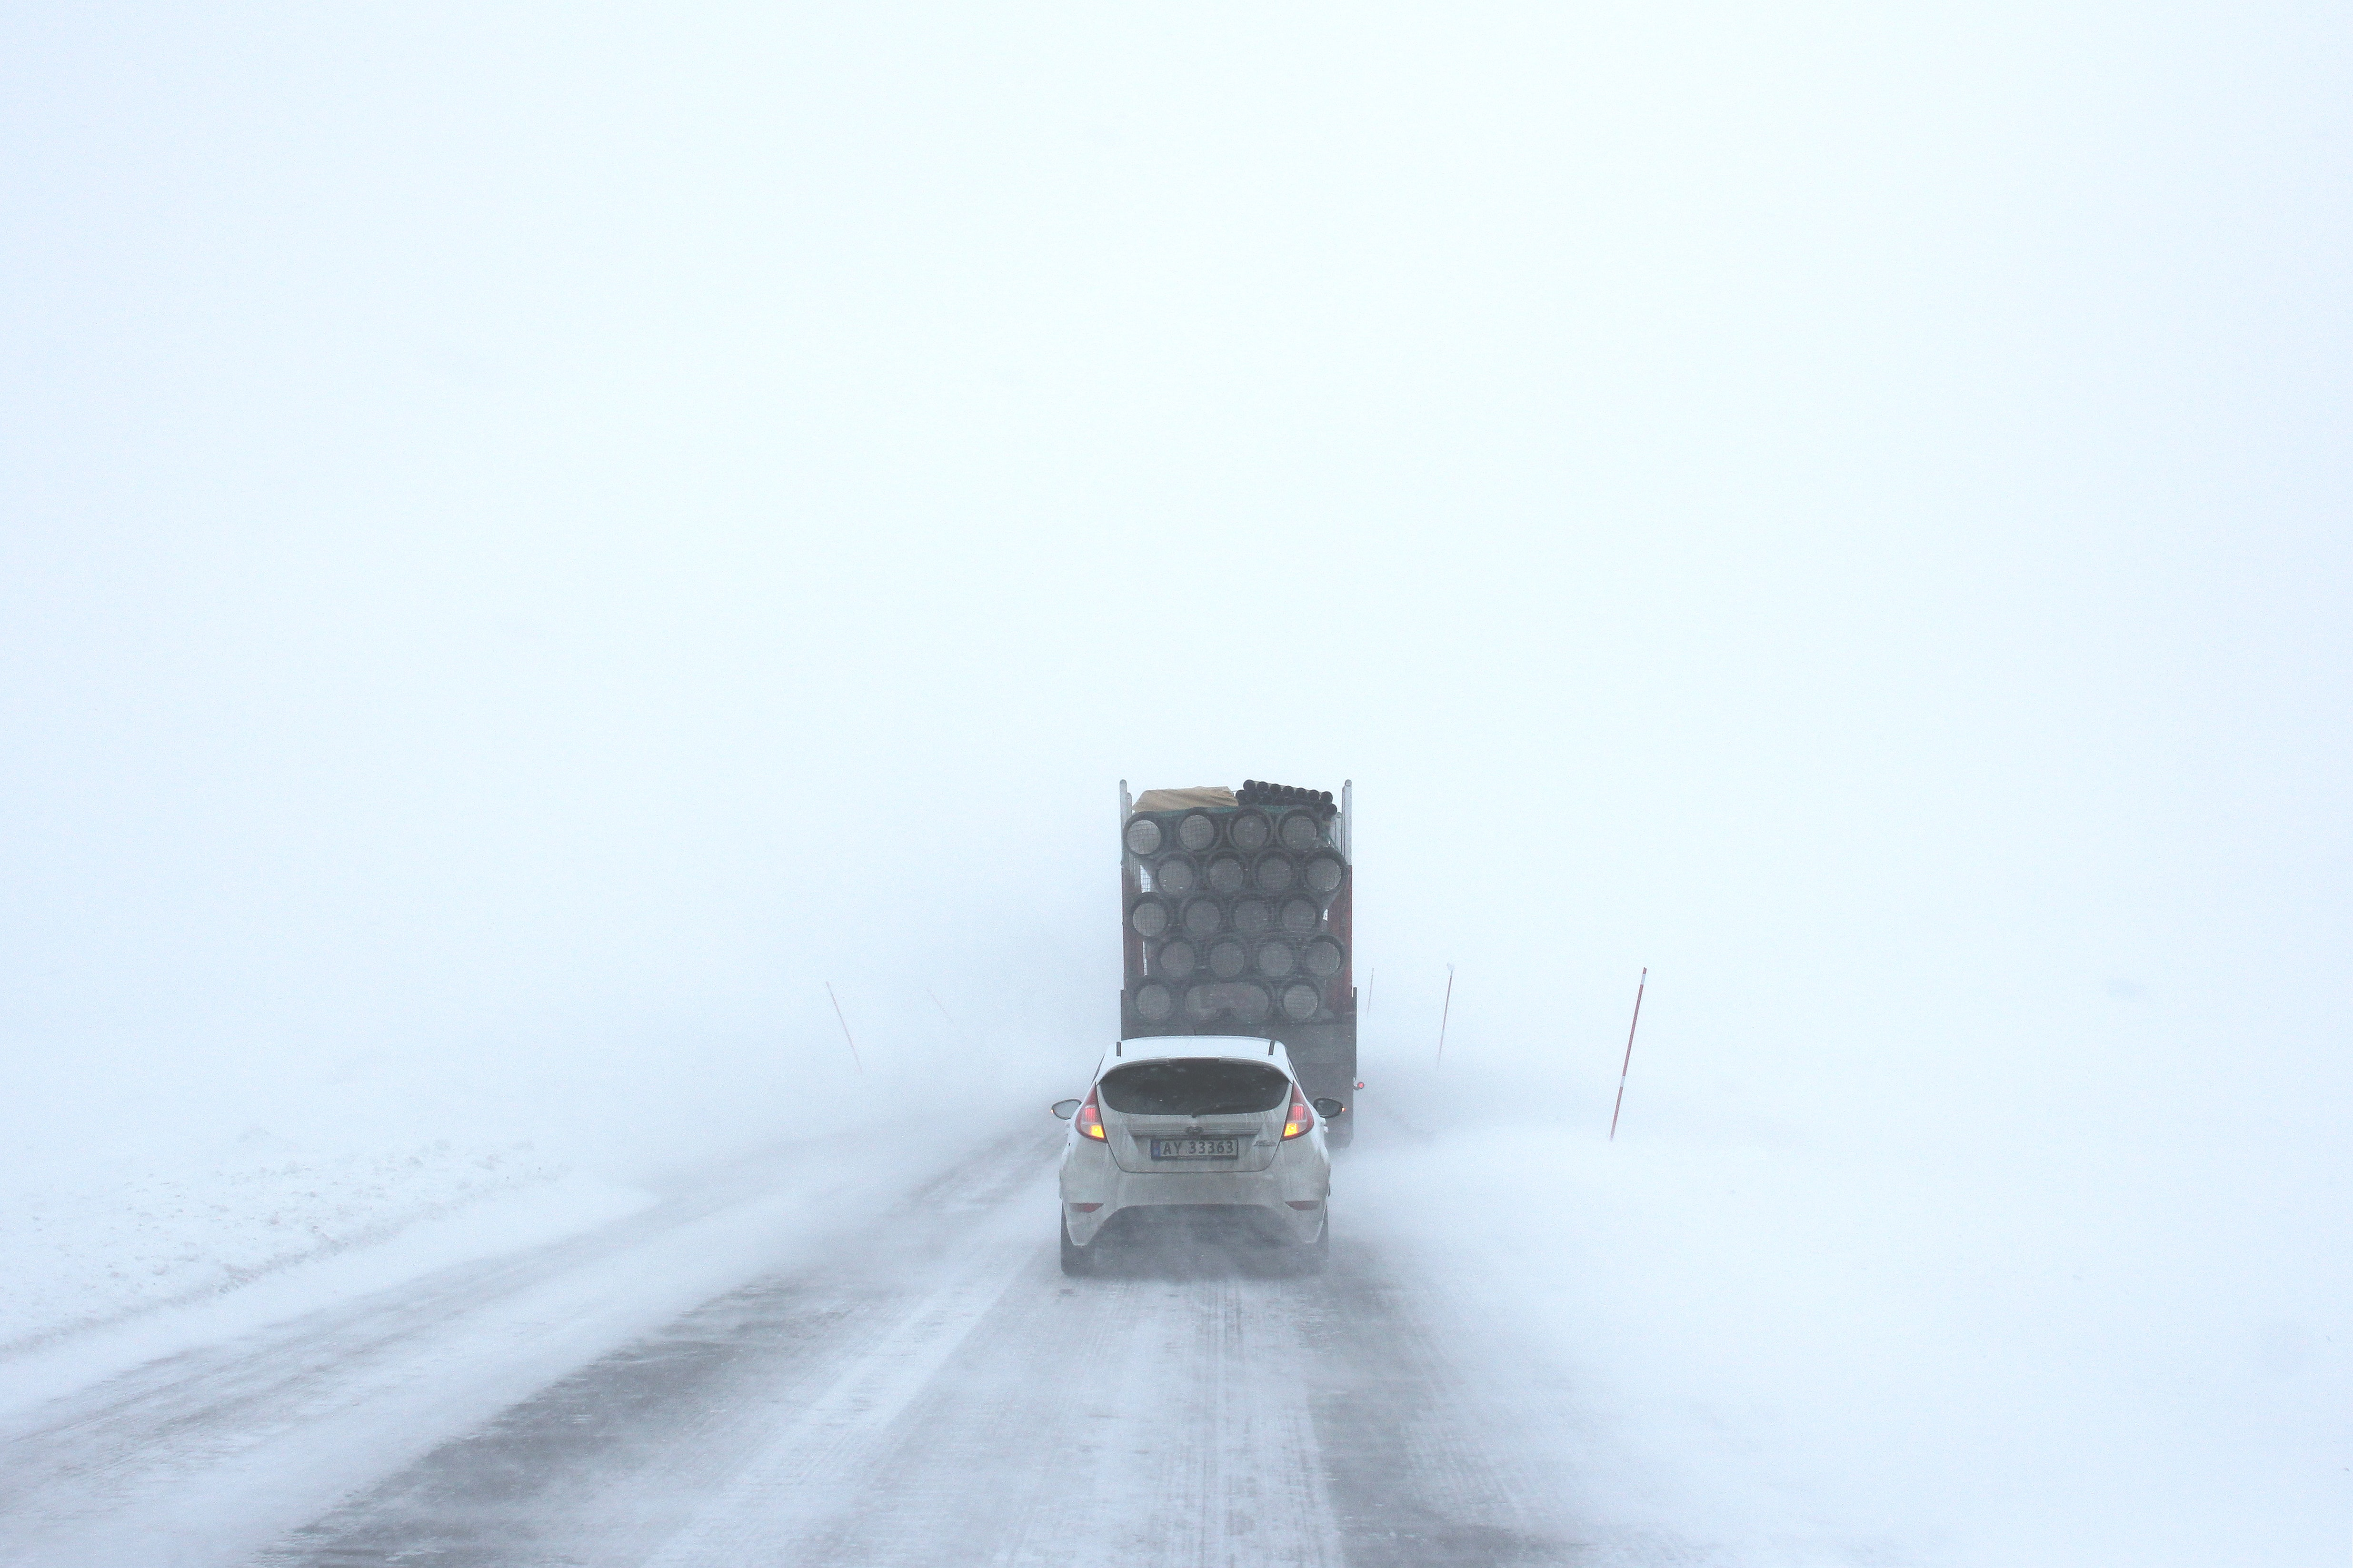 white car behind a truck on snowy road